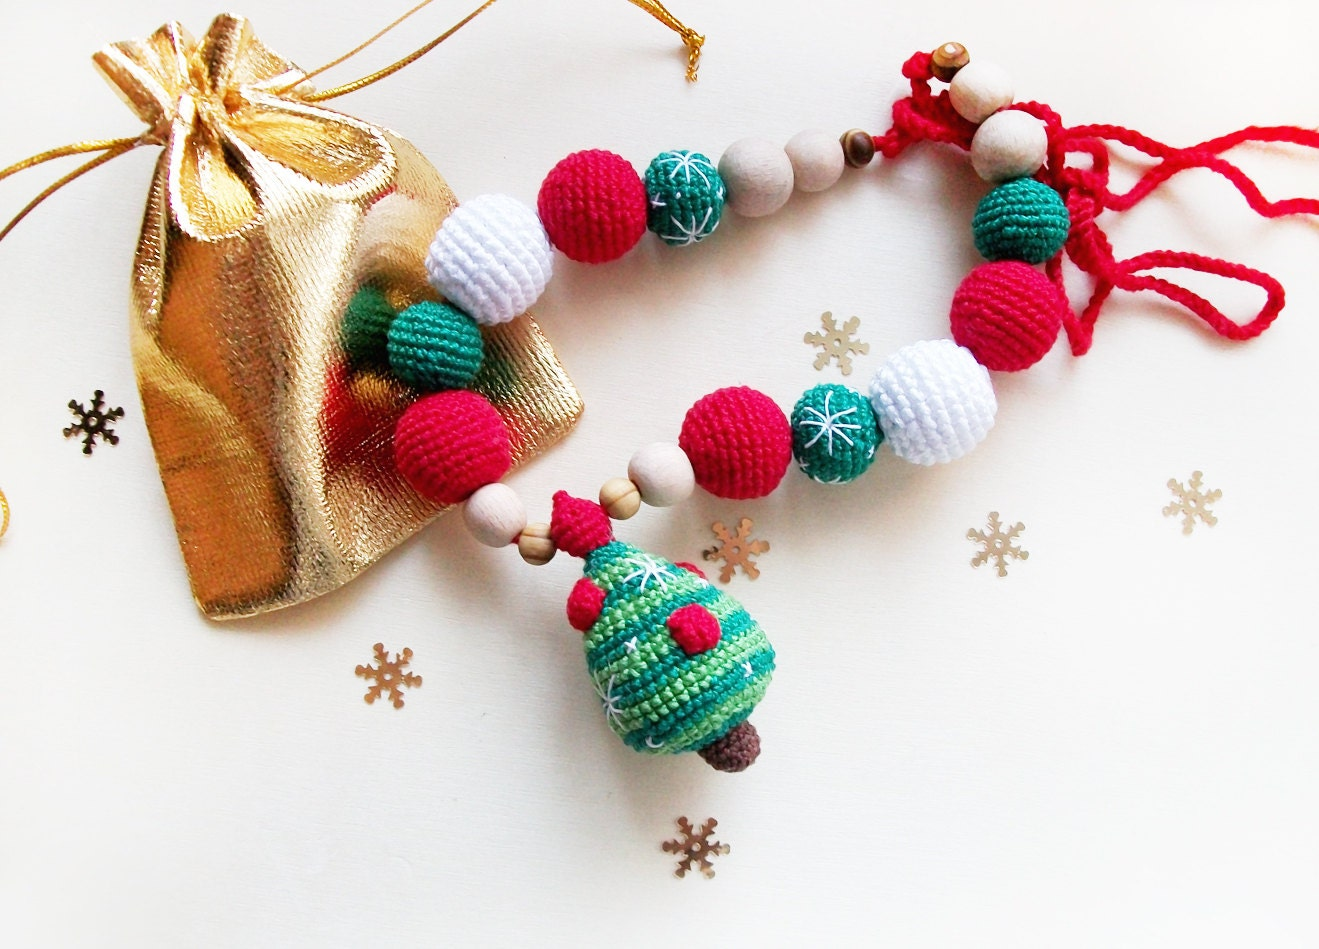 Christmas tree crochet  necklace / Eco-friendly jewellry / Teething Necklace/ Crochet Breastfeeding Necklace/ for moms  and babies - SweetLittleCandyShop